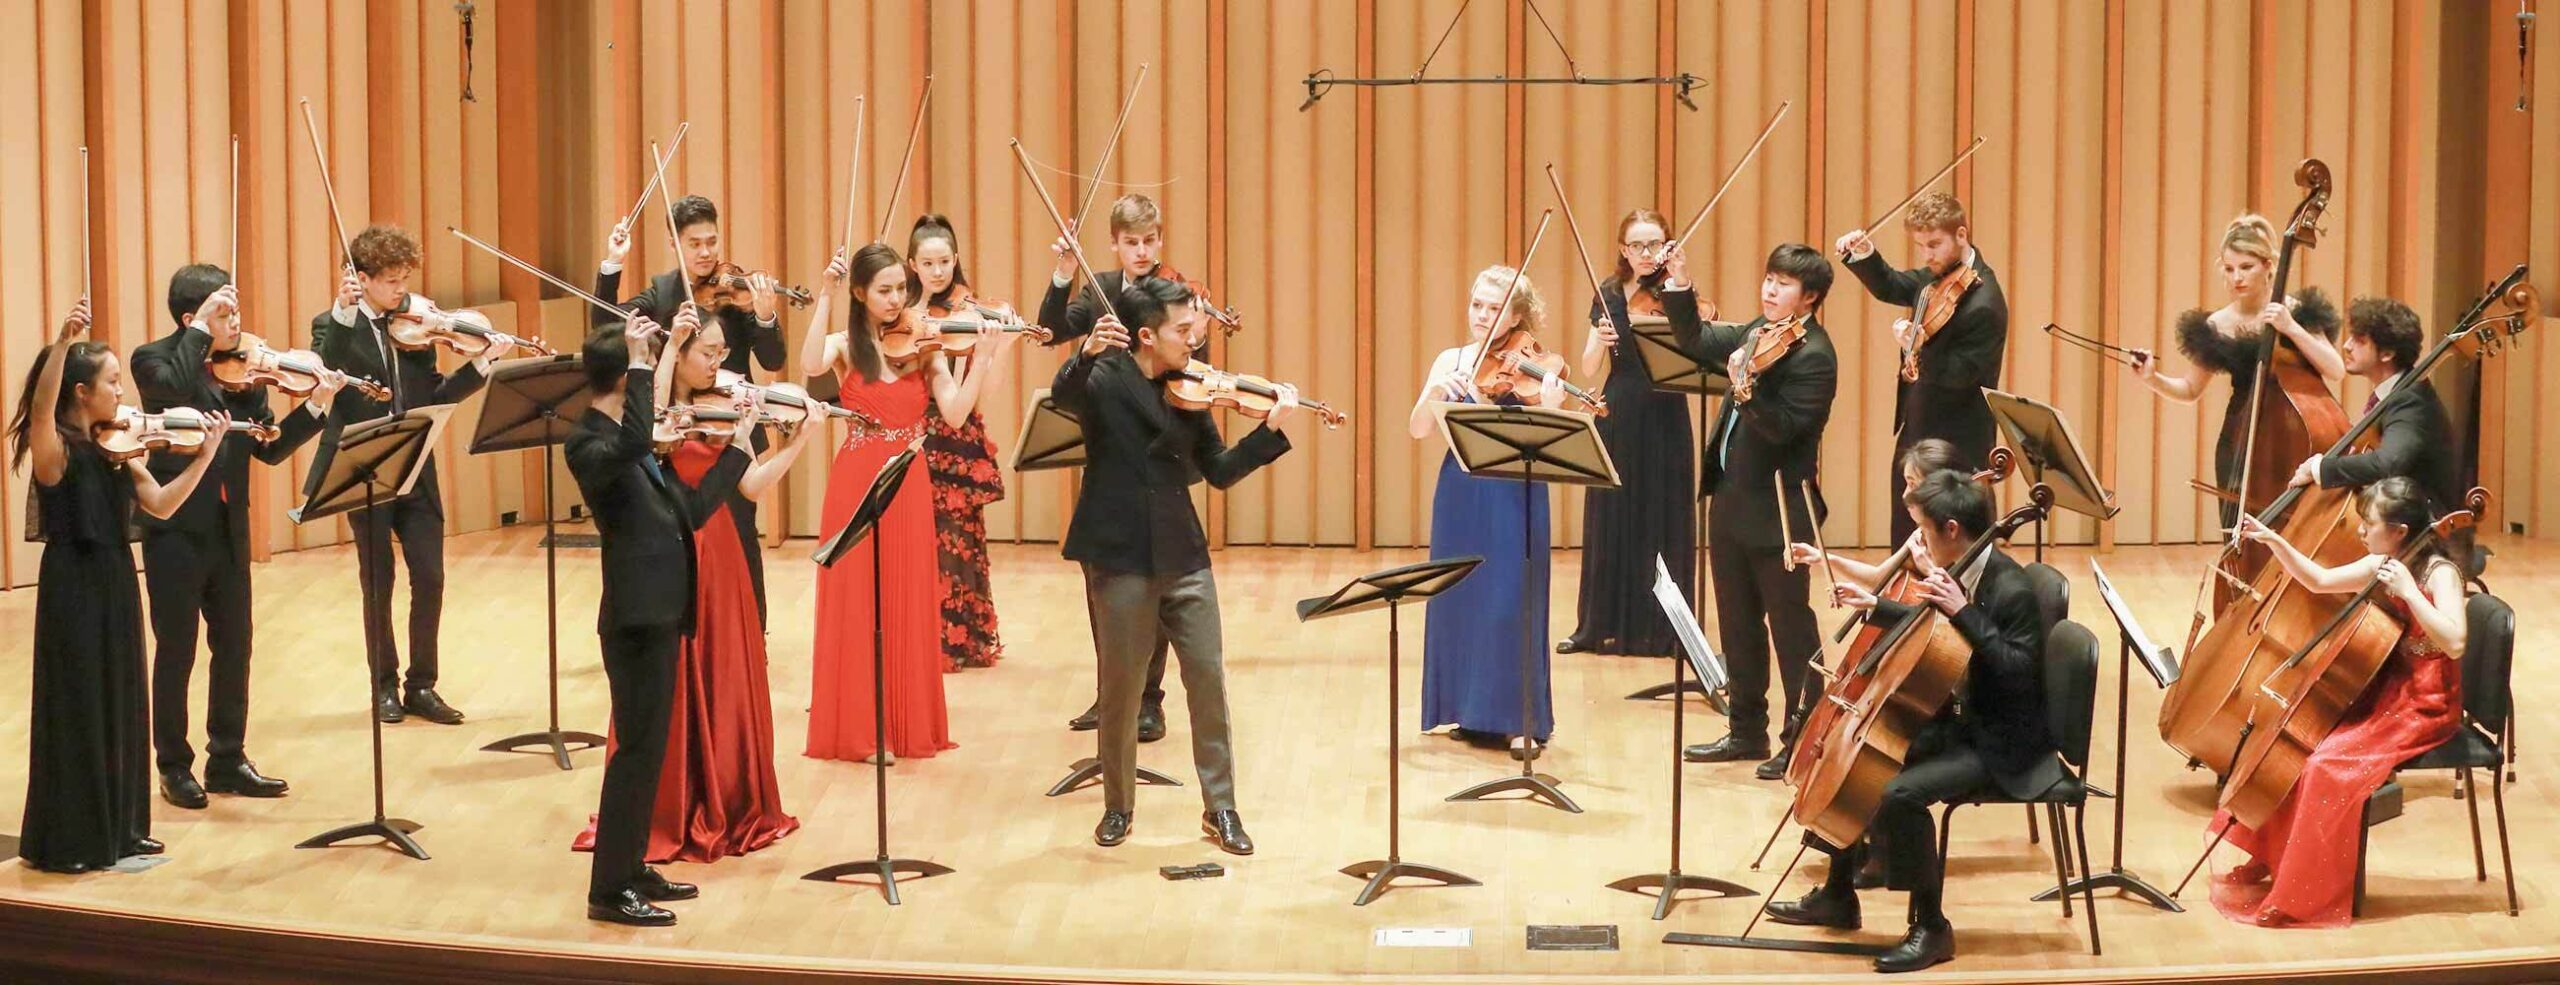 Small chamber orchestra standing on stage with soloist Ray Chen